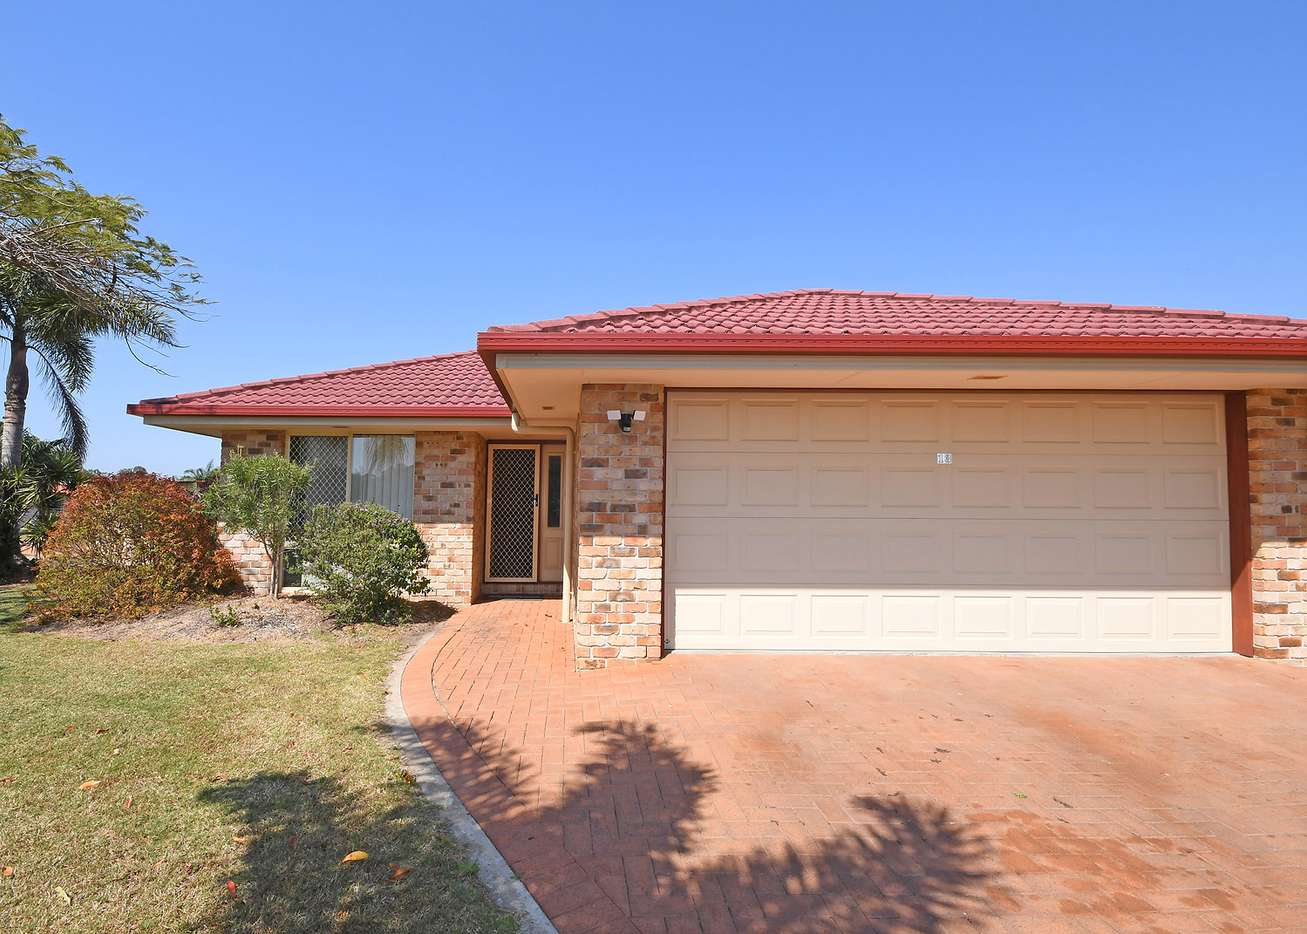 Main view of Homely house listing, 13 Durham Street, Kawungan, QLD 4655